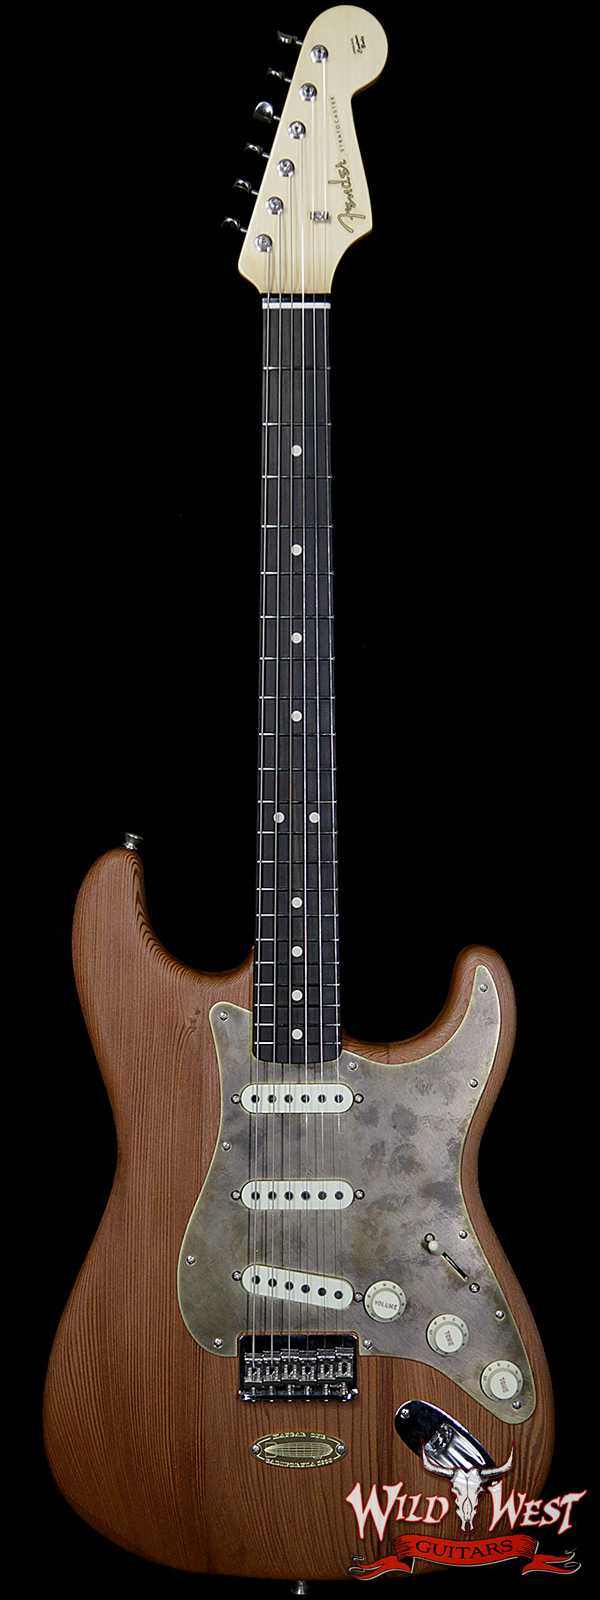 Fender Custom Shop Yuriy Shishkov Masterbuilt Airfield Stratocaster Closet Classic Reclaimed Redwood from Hangar One Zeppelin Storage